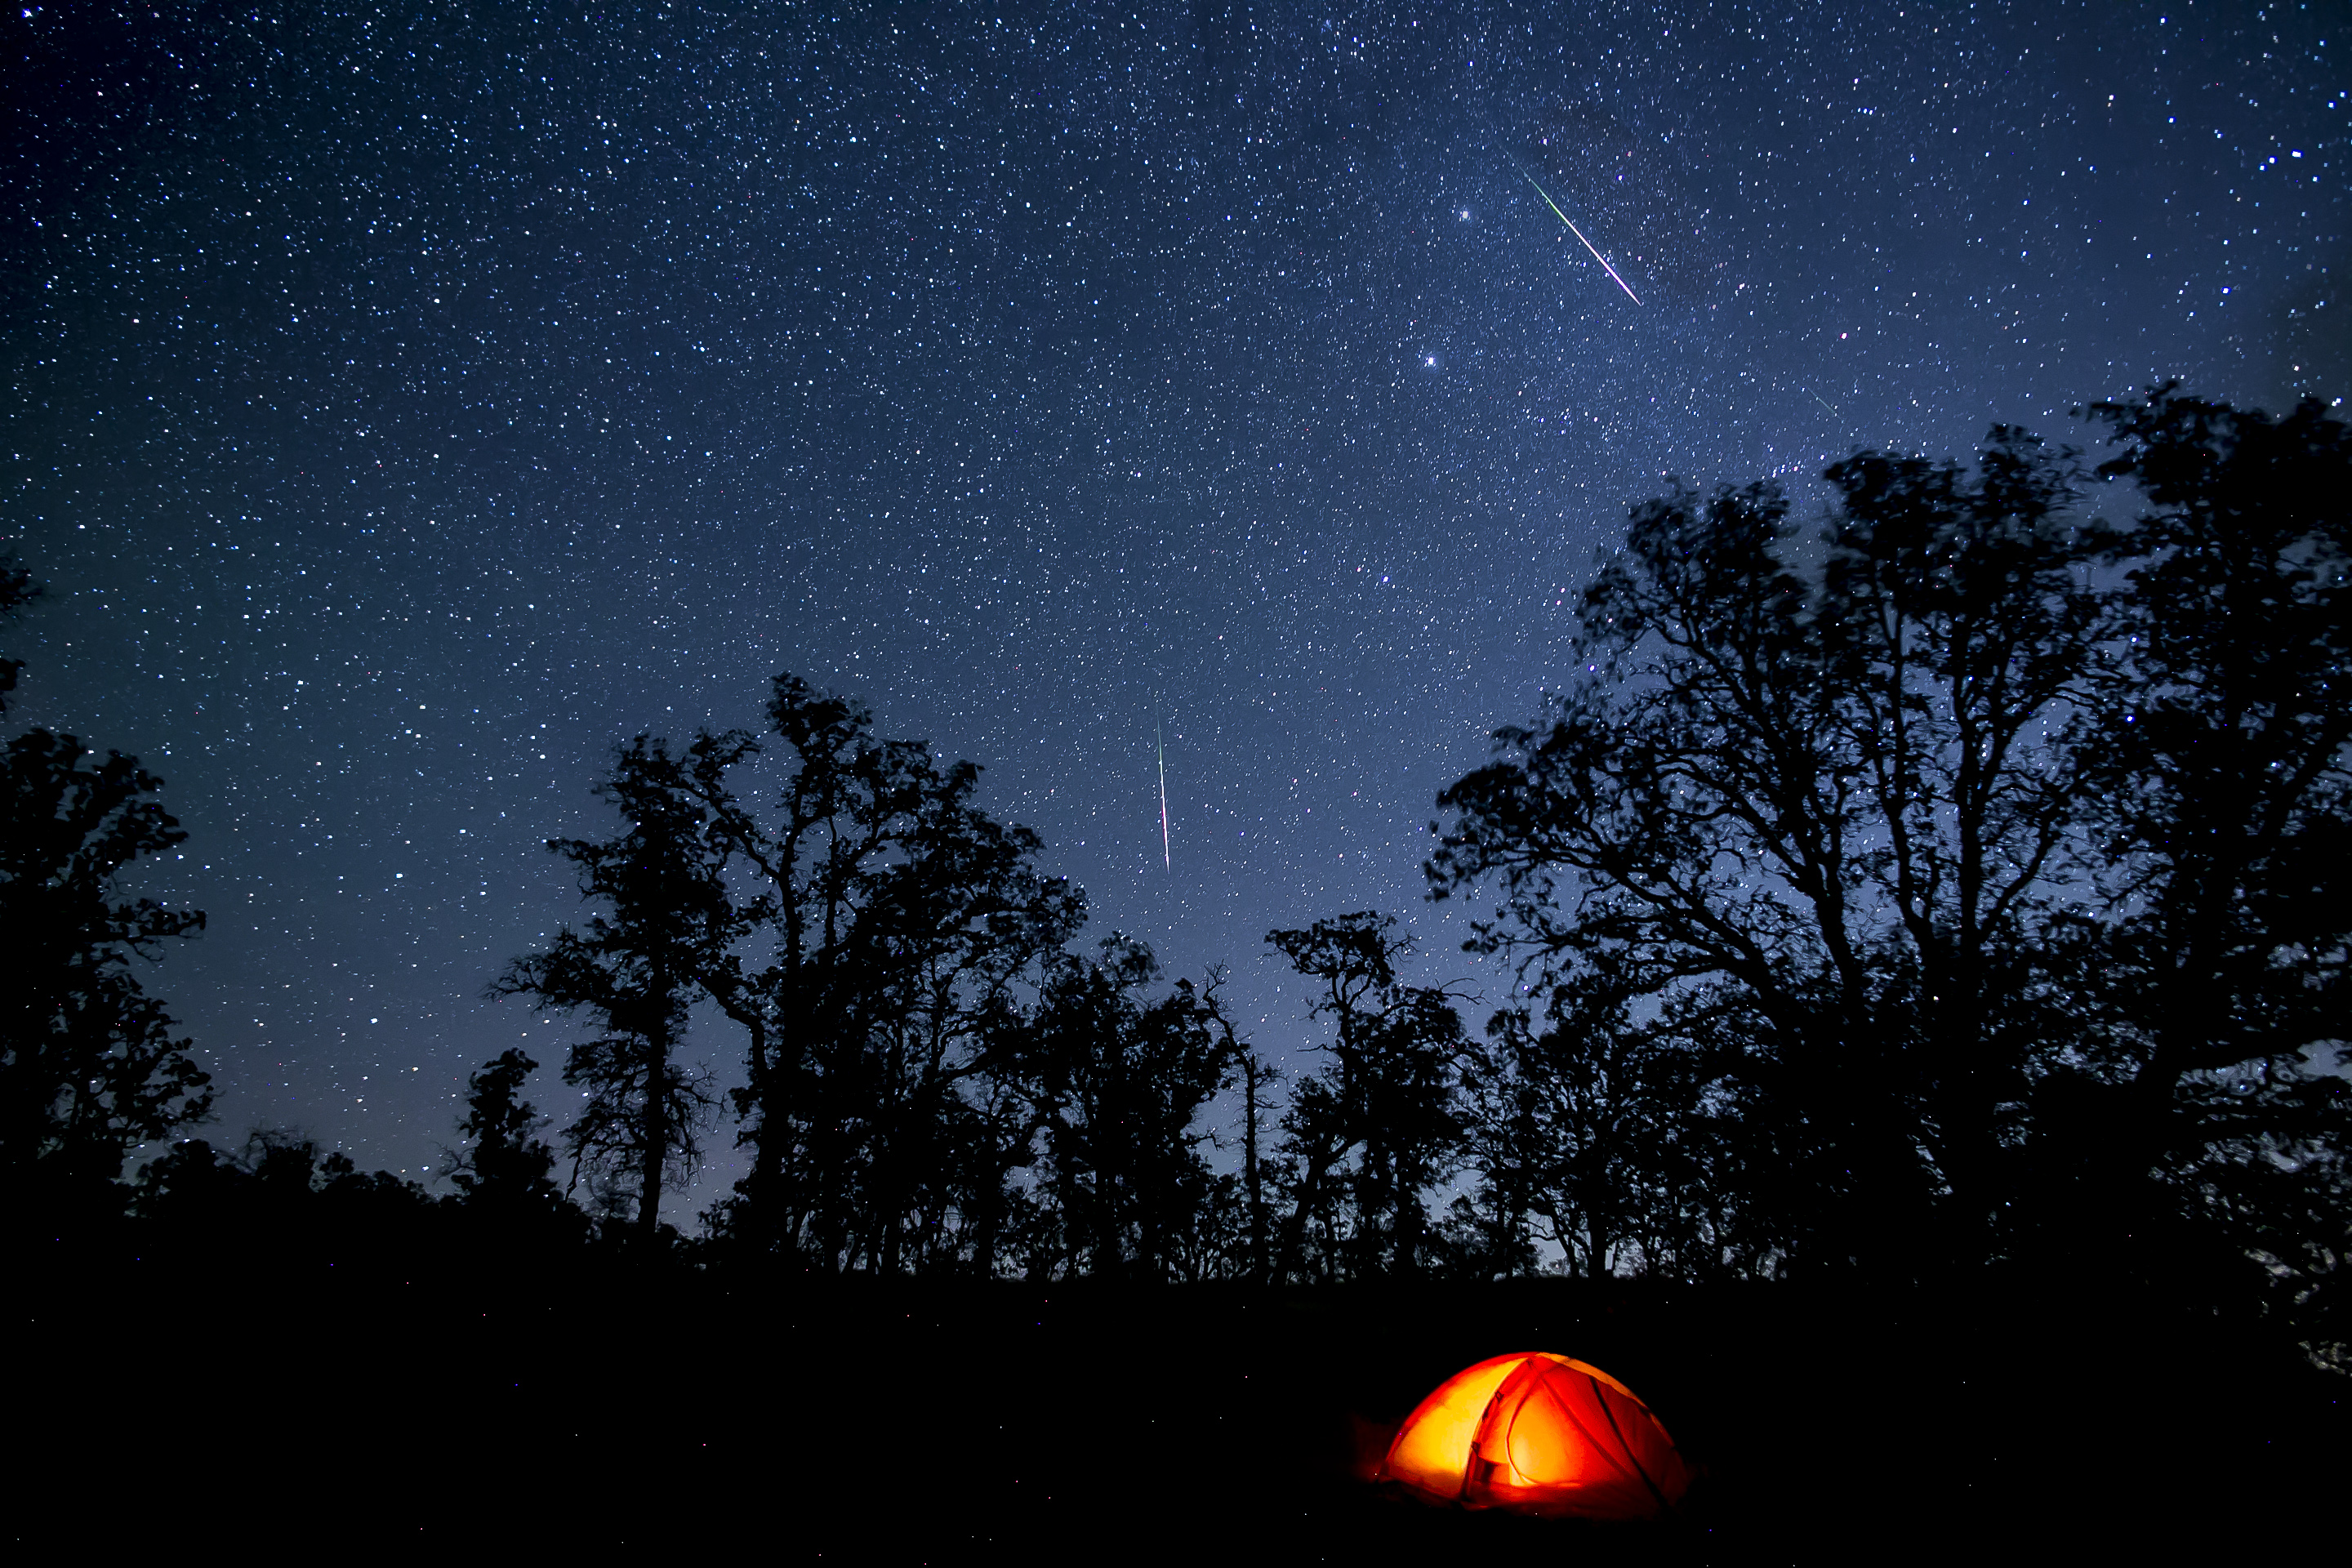 Aug. 12 - Perseid Meteor Shower